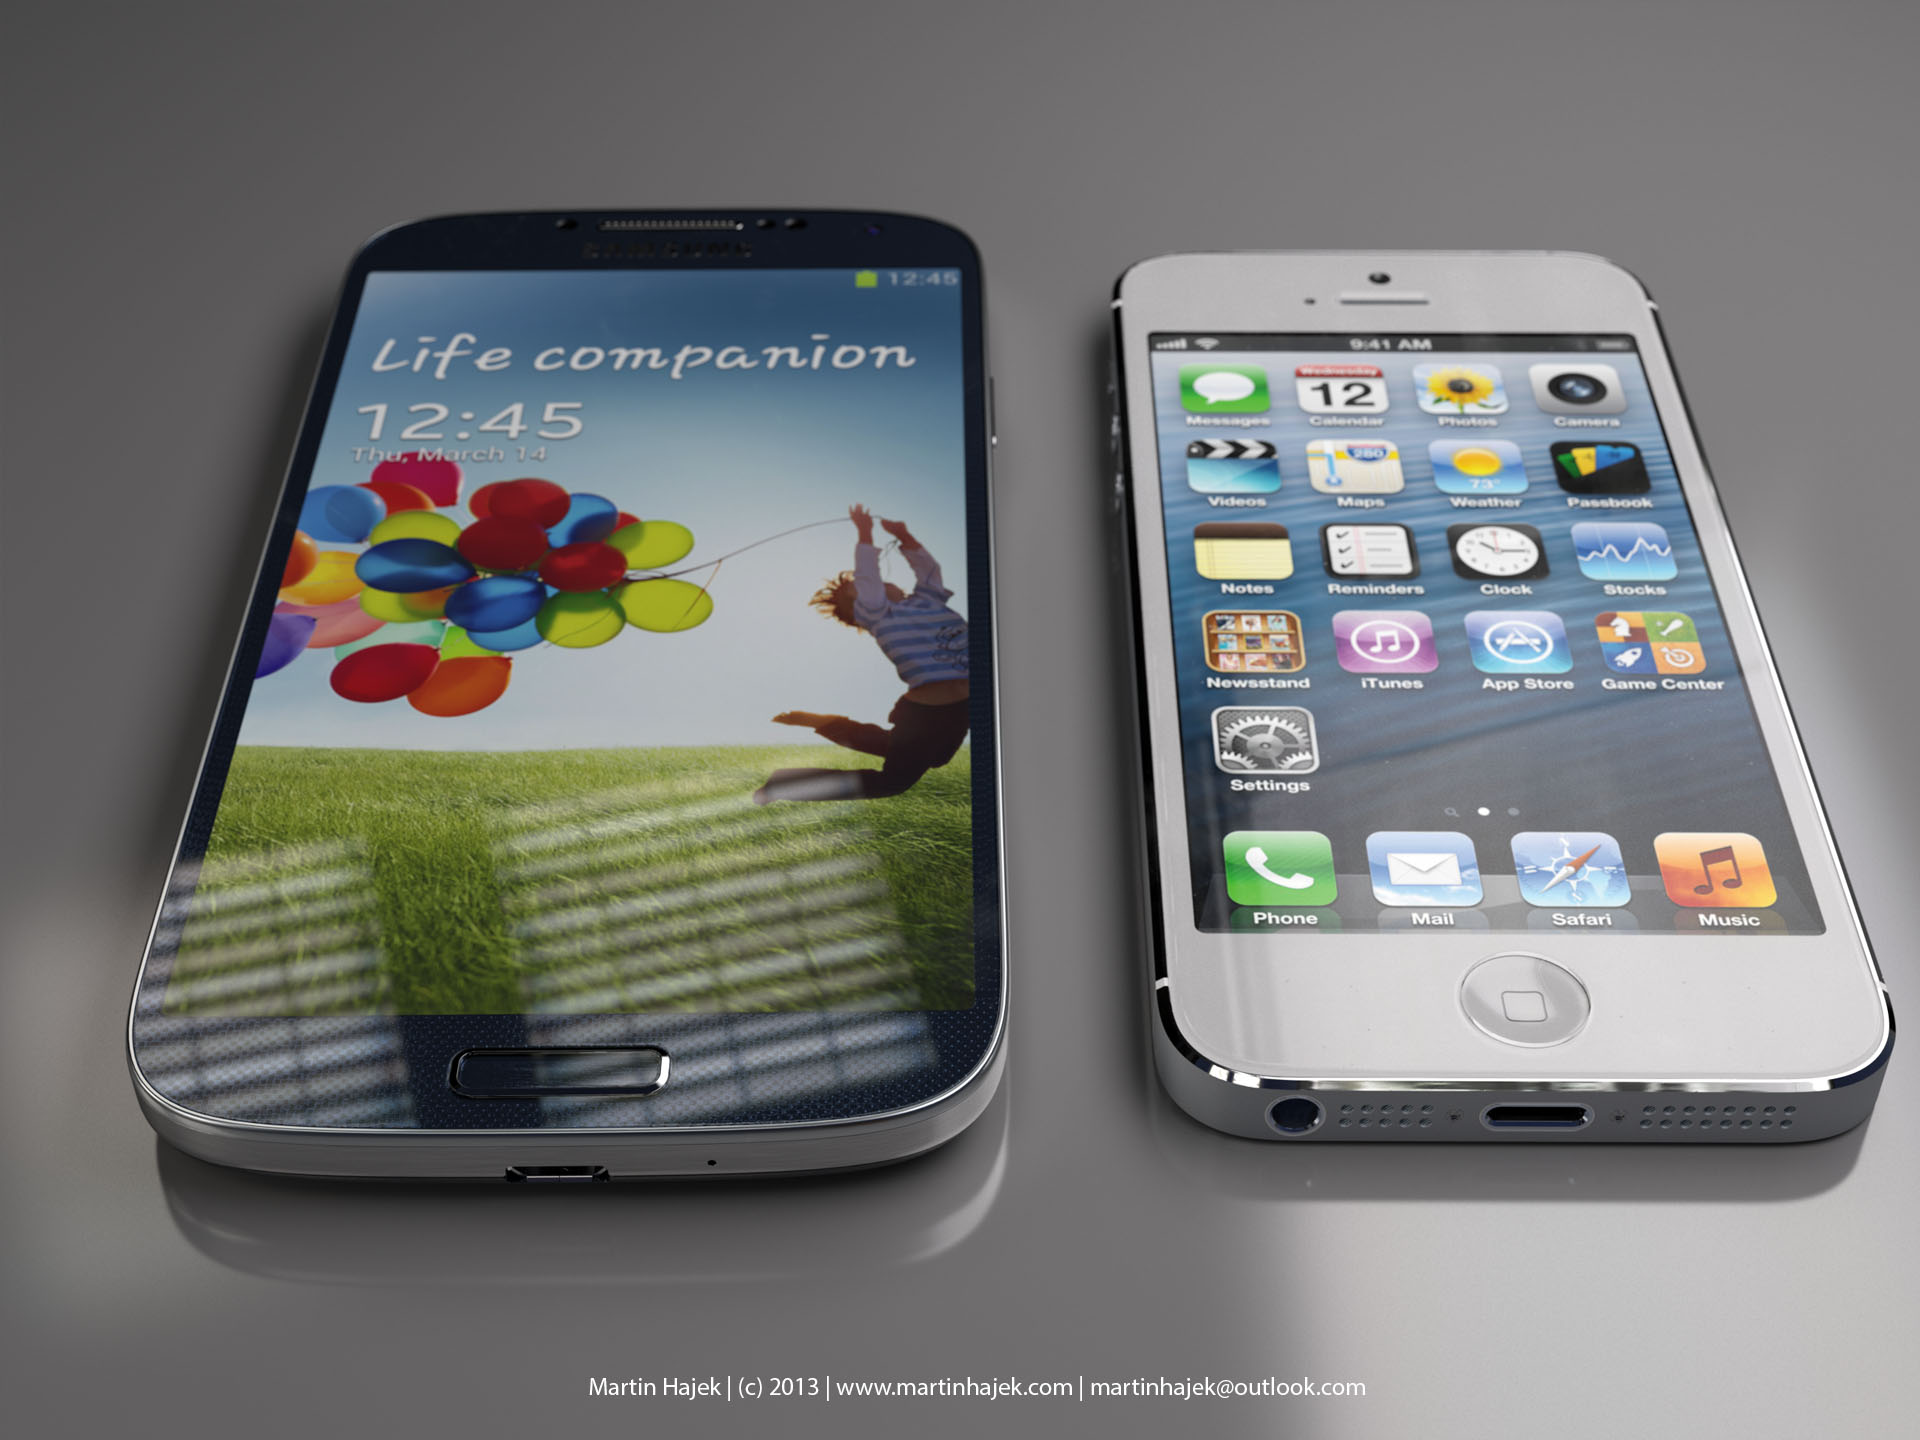 [VIDEO/PICS] iPhone 5S vs Galaxy S4: Who's The Boss?